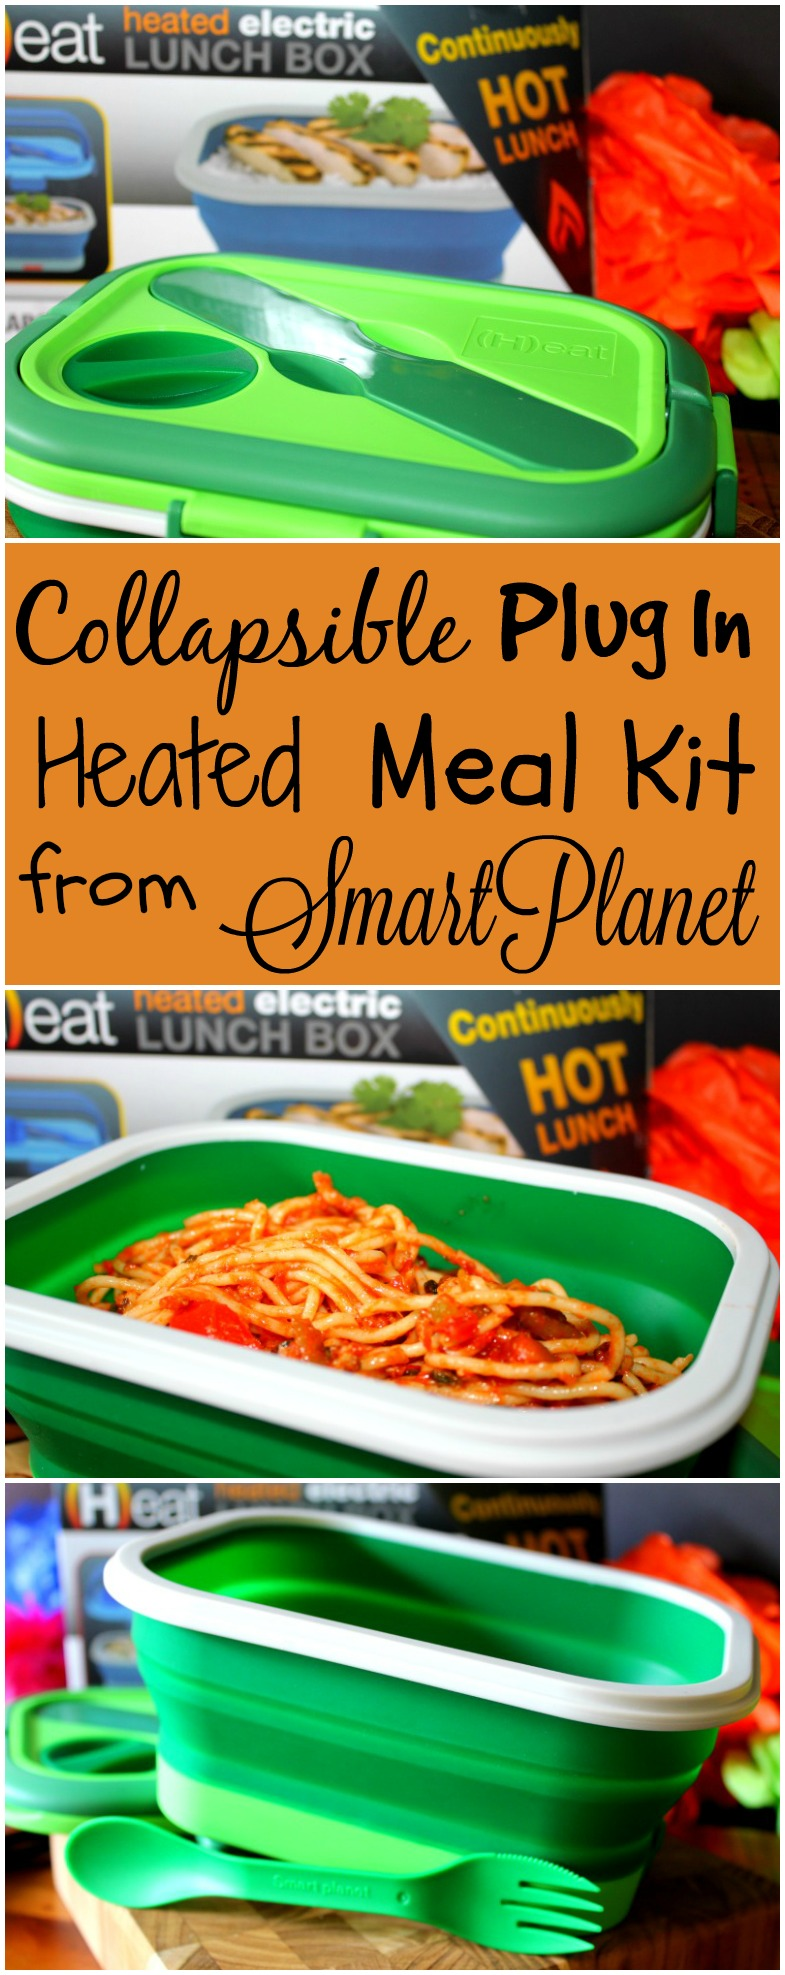 Collapsible Plug In Heated Meal Kit from SmartPlanet is Perfect for Lunch in the Office or on The Go in the Car